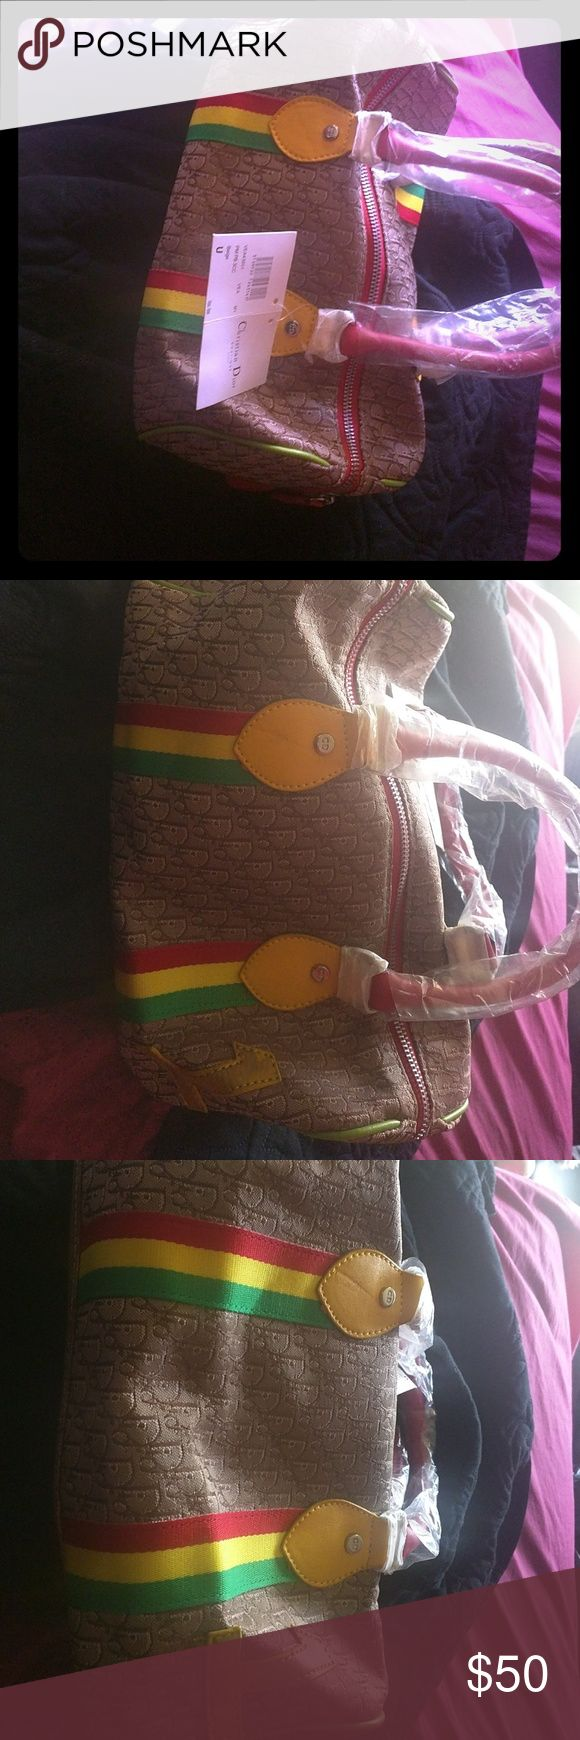 Beige christian dior pocket book Jamaican colors,small,bright colors, the one is a little worn on the side ,includes pocketbook bag and plastic , only used once Christian Dior Bags Mini Bags